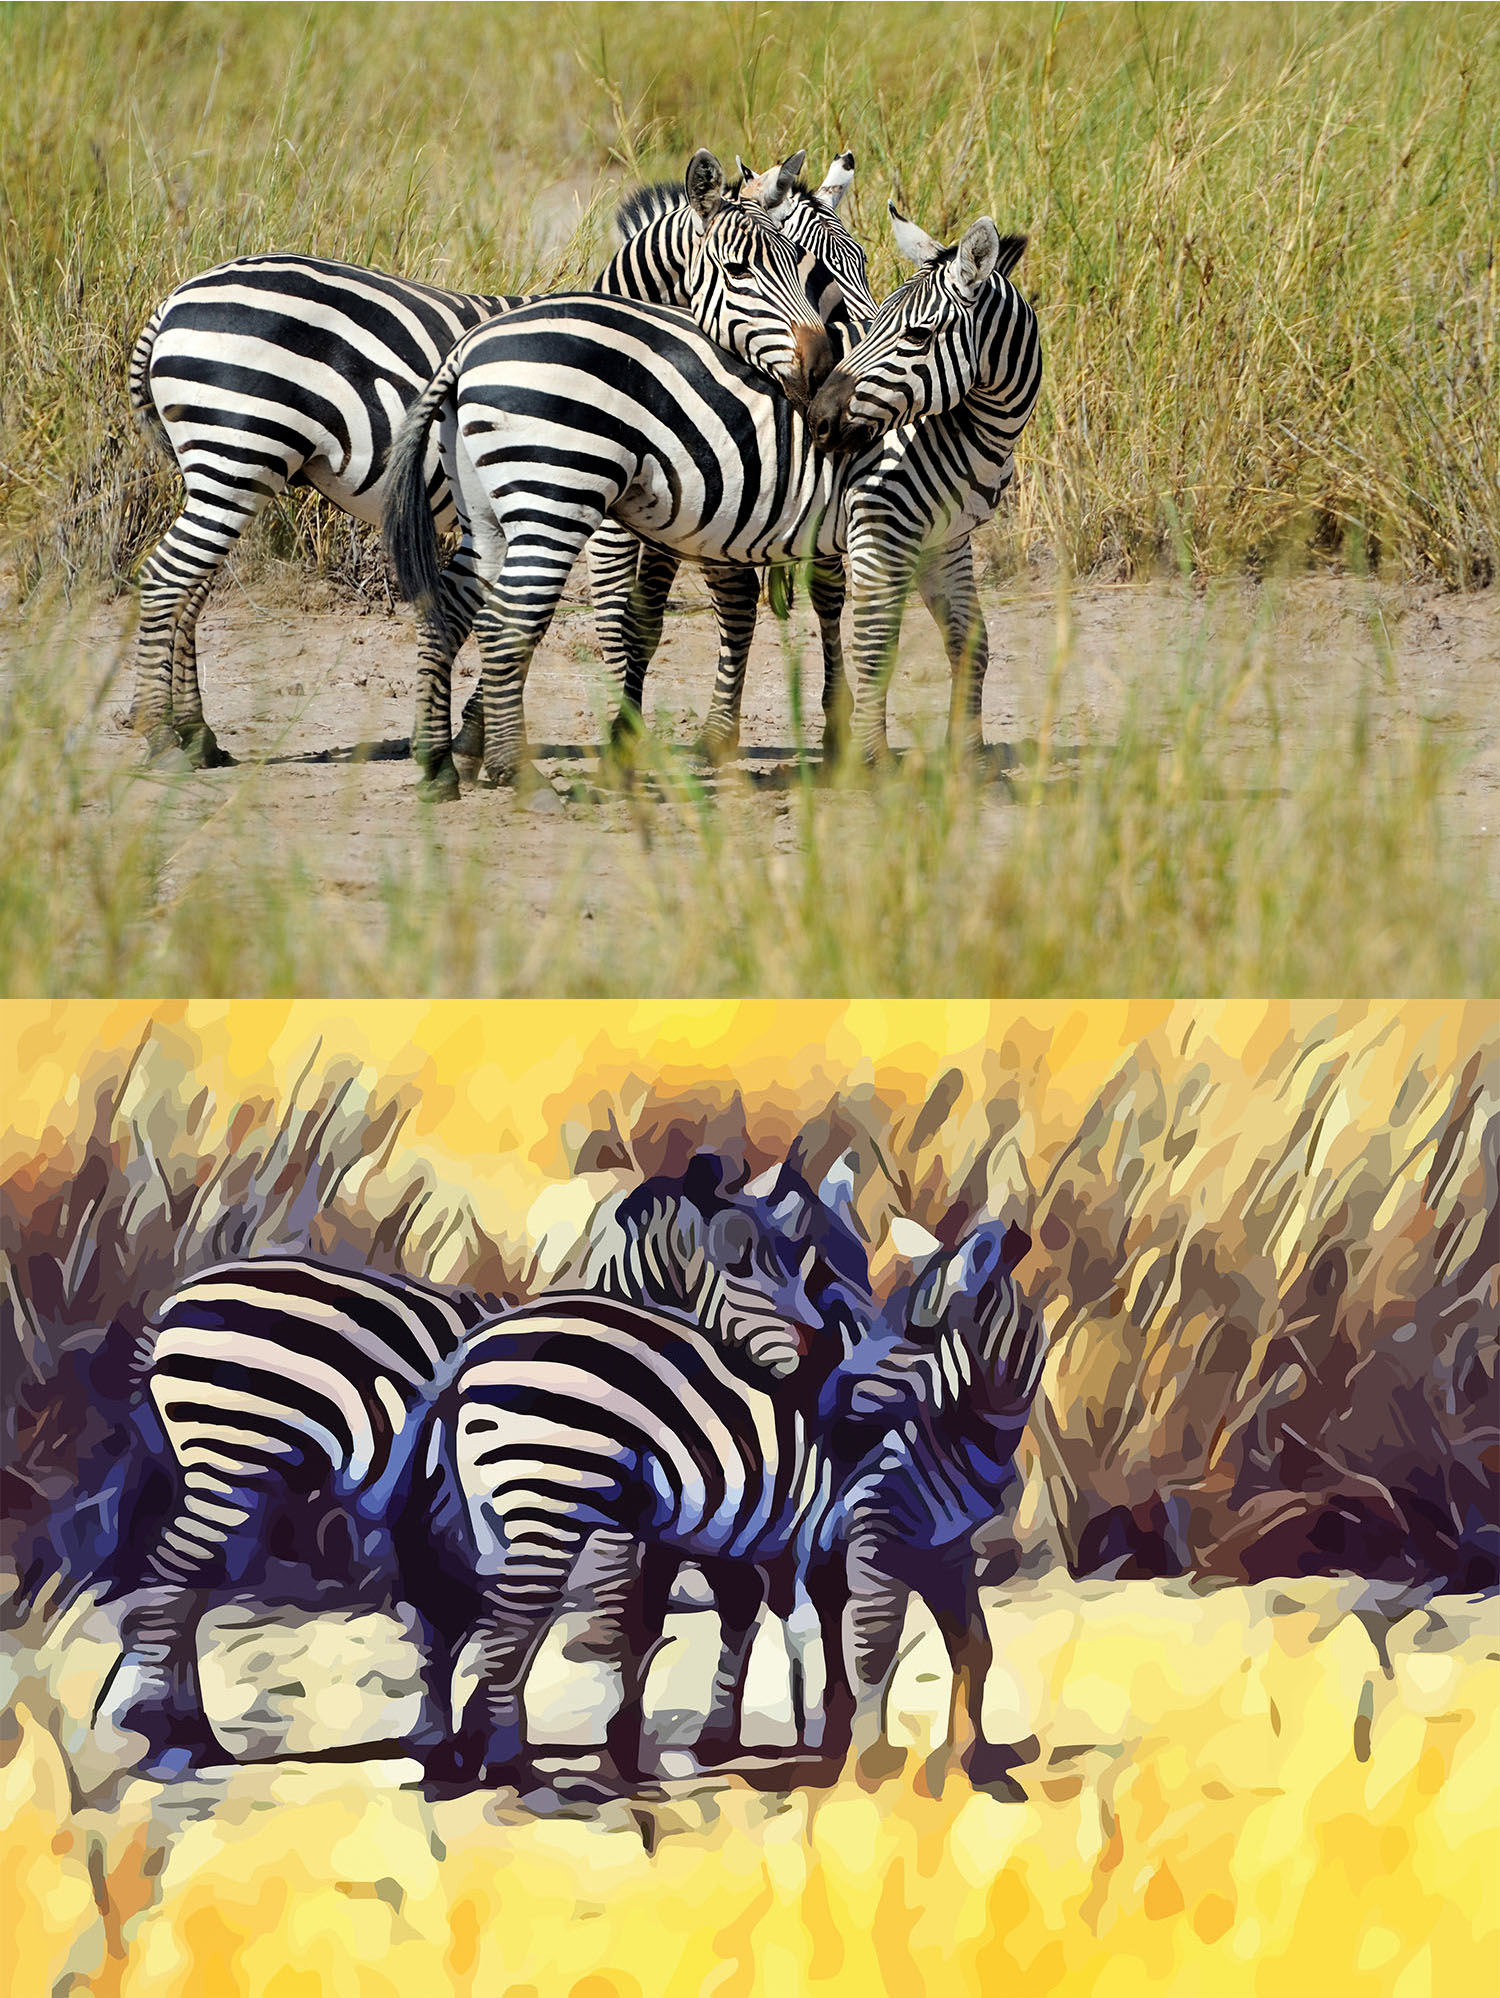 Before and after stylized image of three zebras standing together touching noses